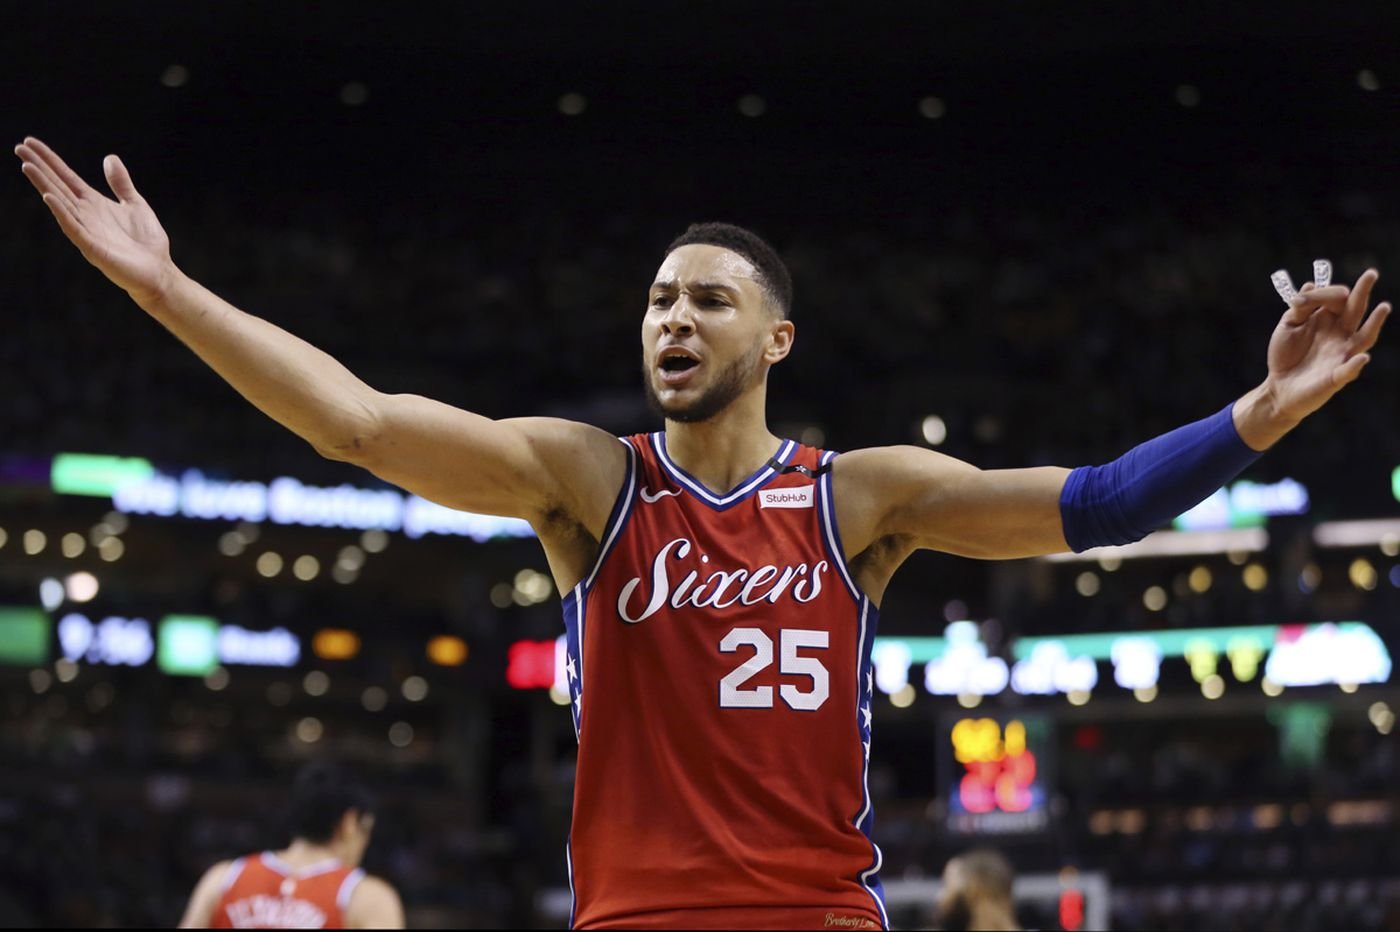 Was Ben Simmons the NBA's rookie of the year? Not according to one New York Post writer